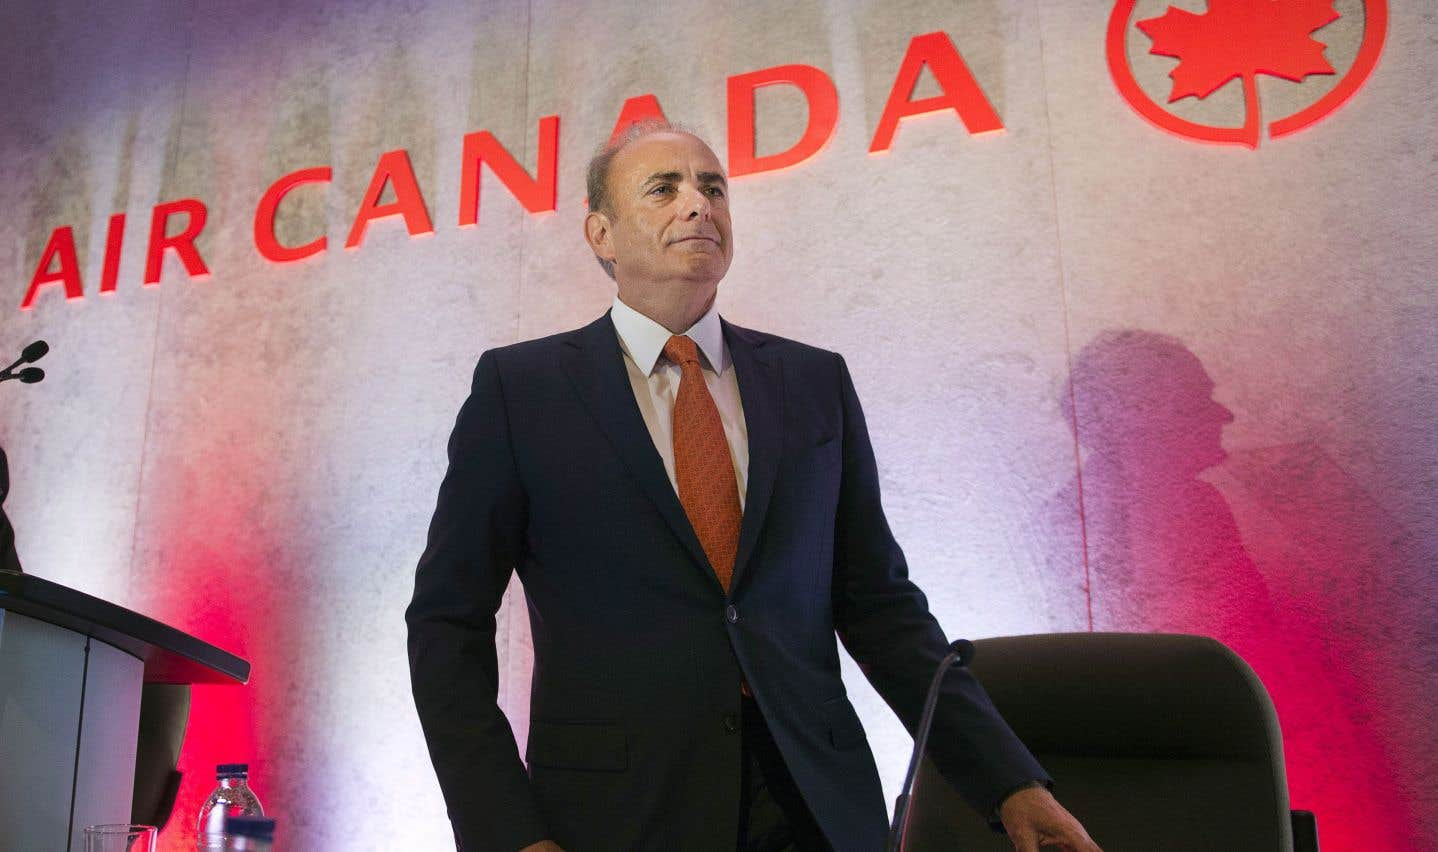 Le président et chef de la direction d'Air Canada, Calin Rovinescu